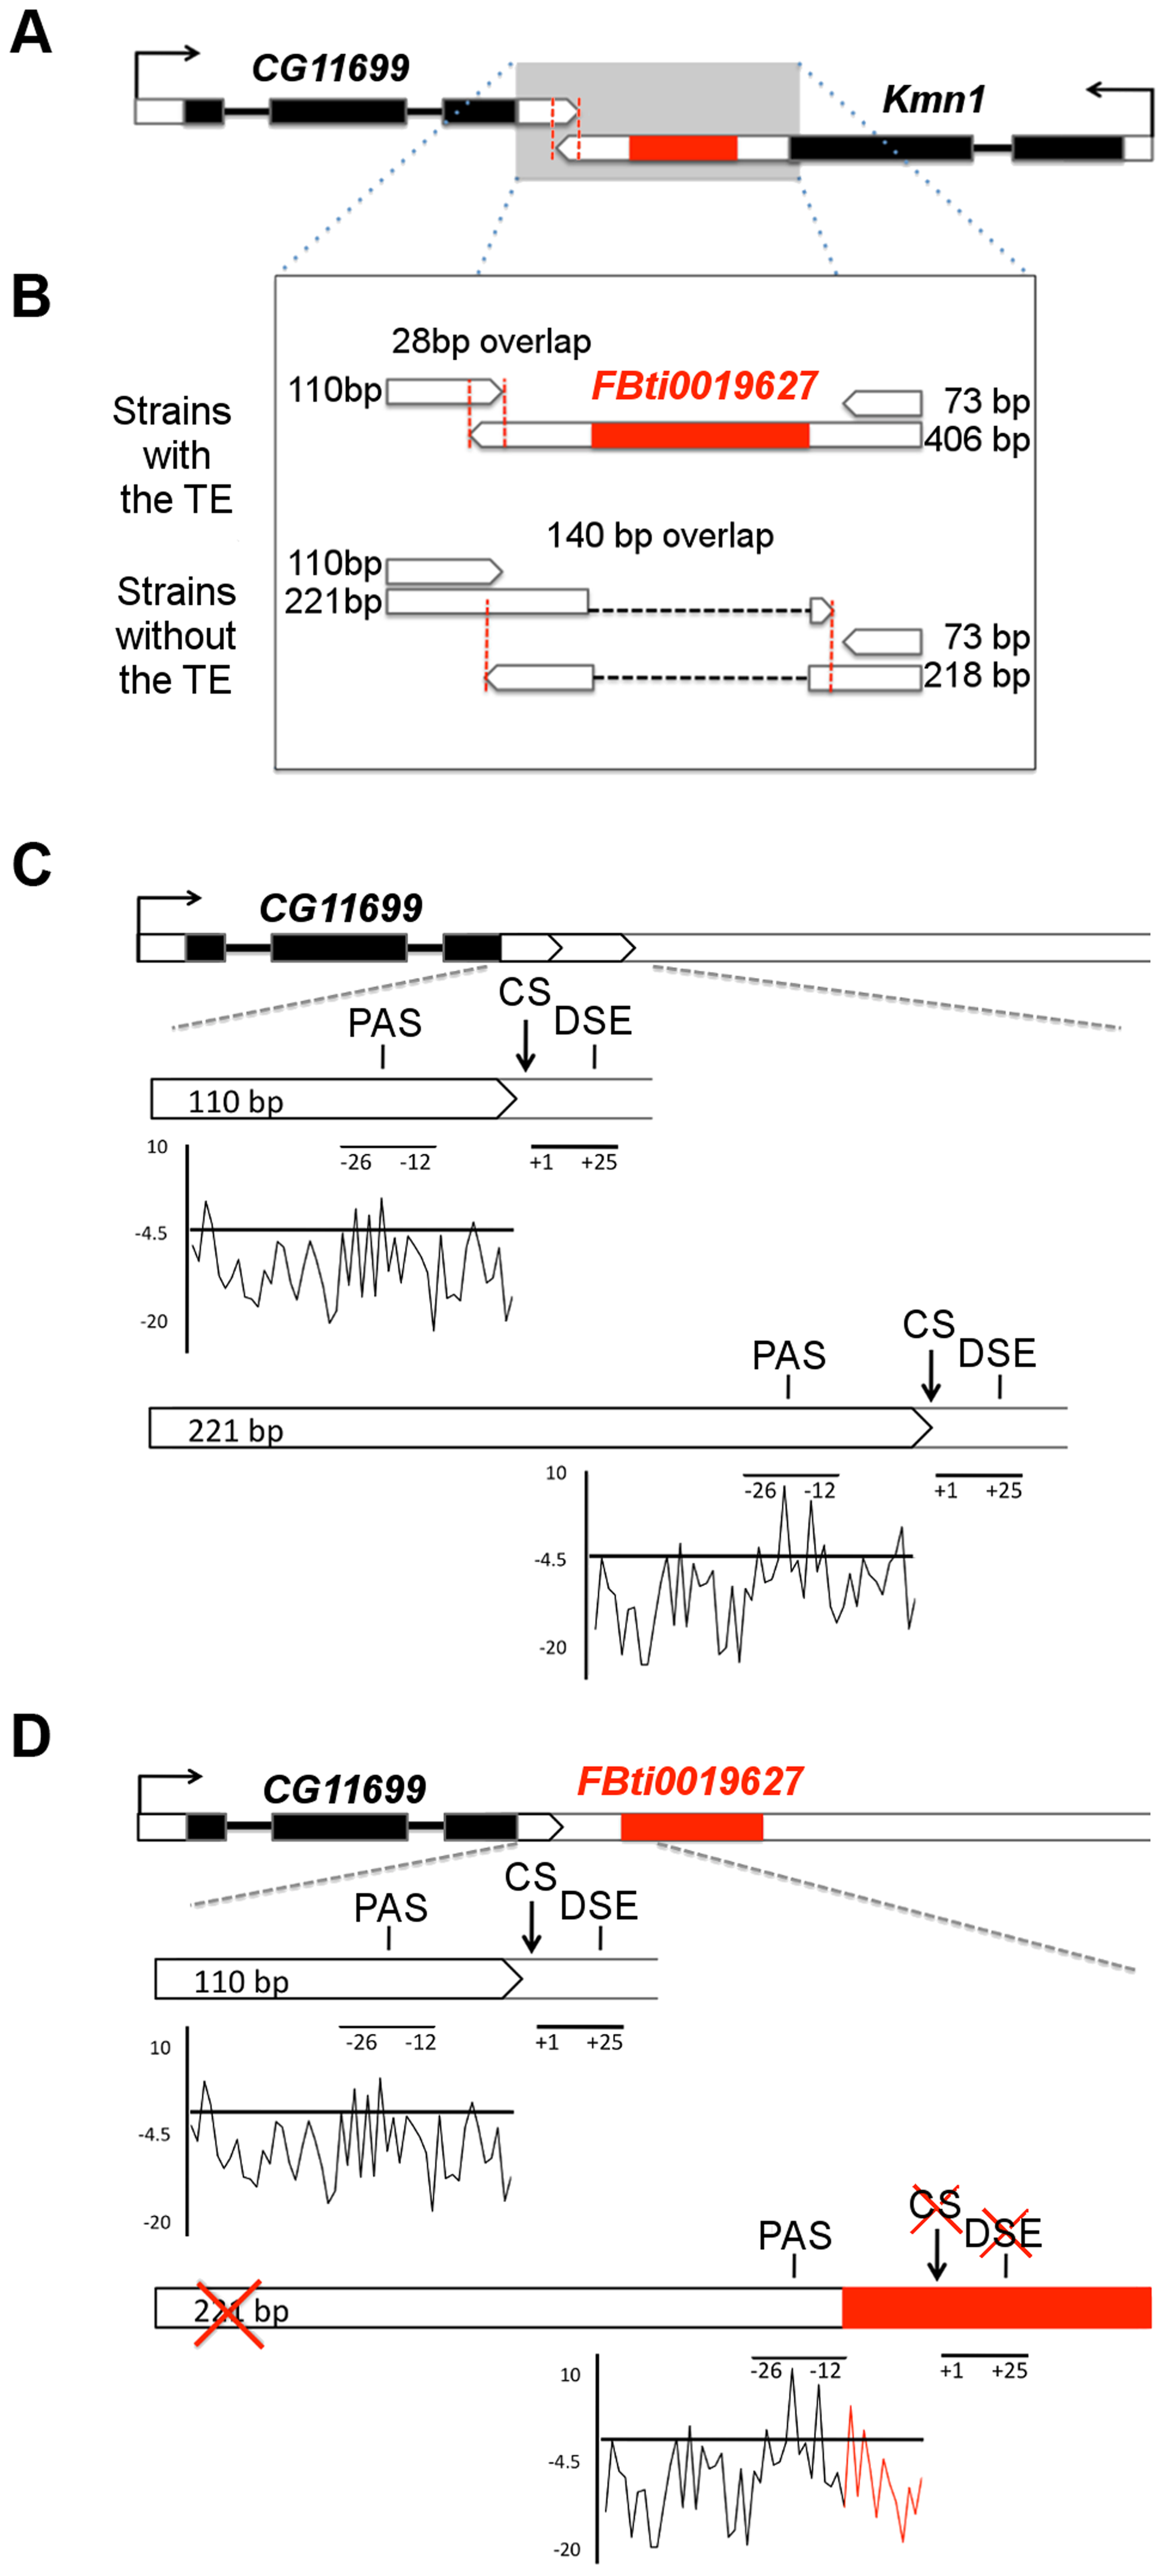 <i>FBti0019627</i> is inserted in the 3′ UTR of <i>Kmn1</i> and affects the length of <i>Kmn1</i> and <i>CG11699</i>.